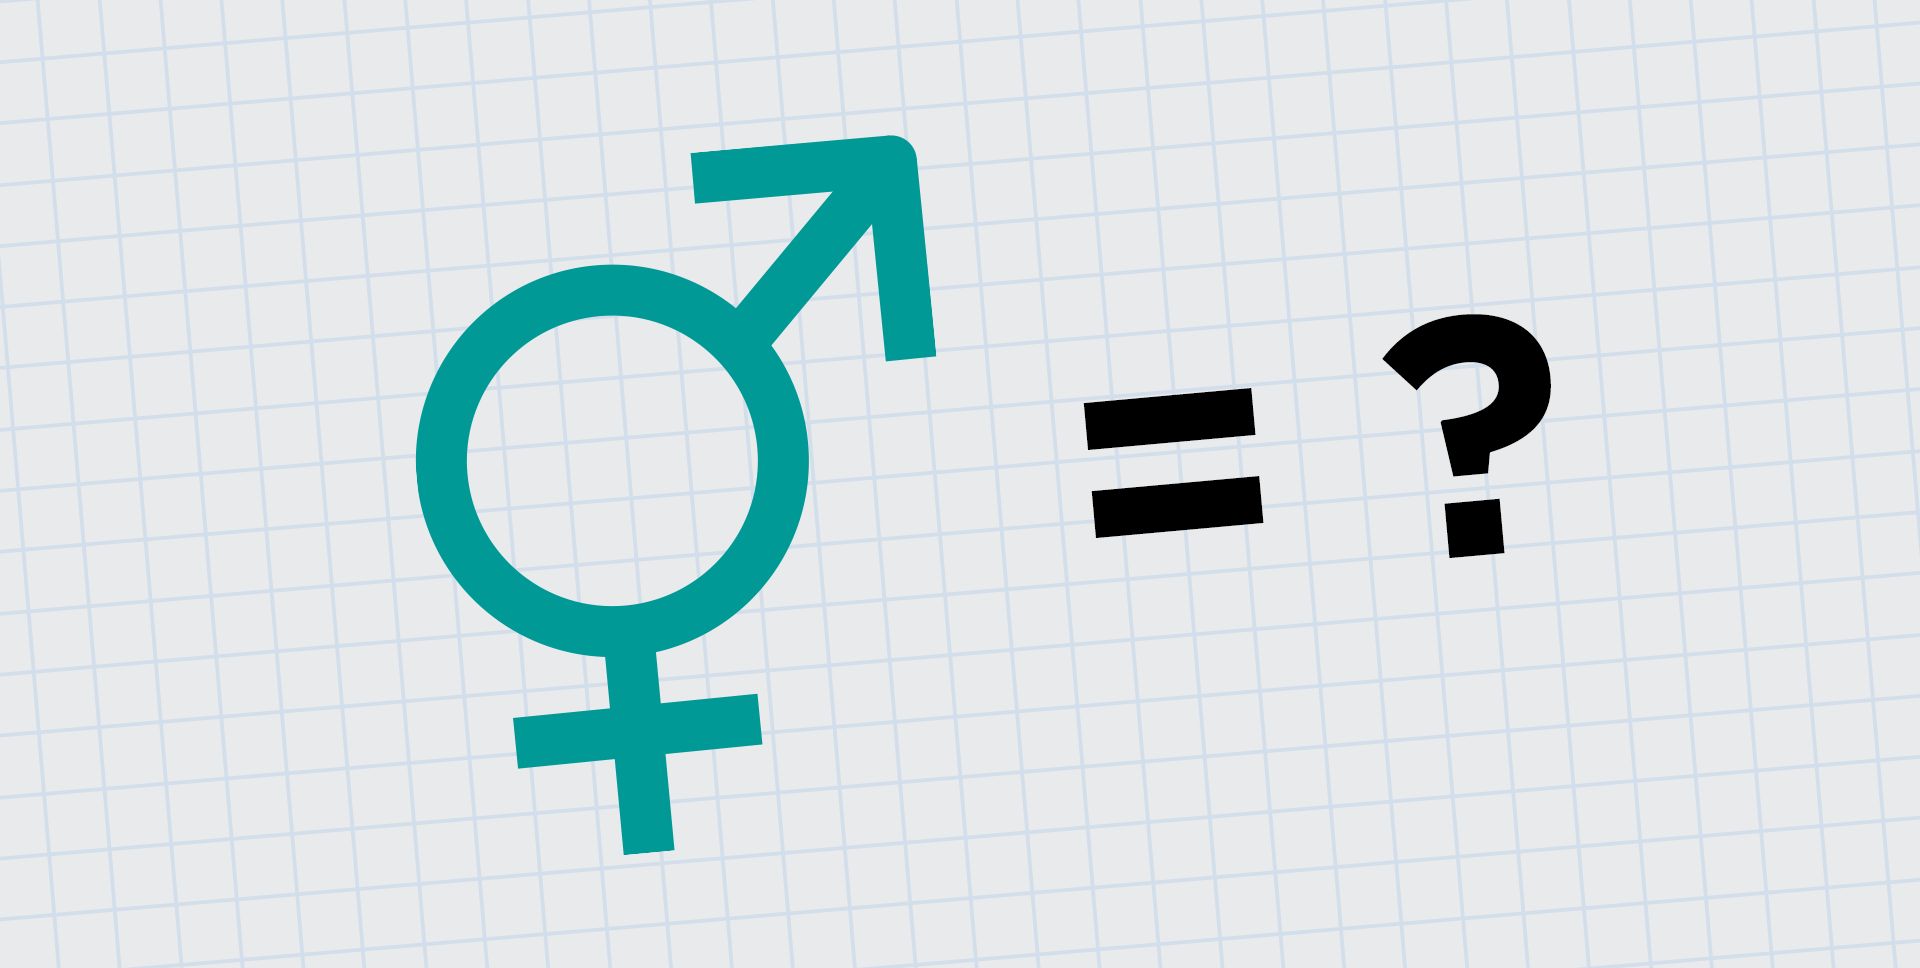 Male and female gender symbols next to a question mark